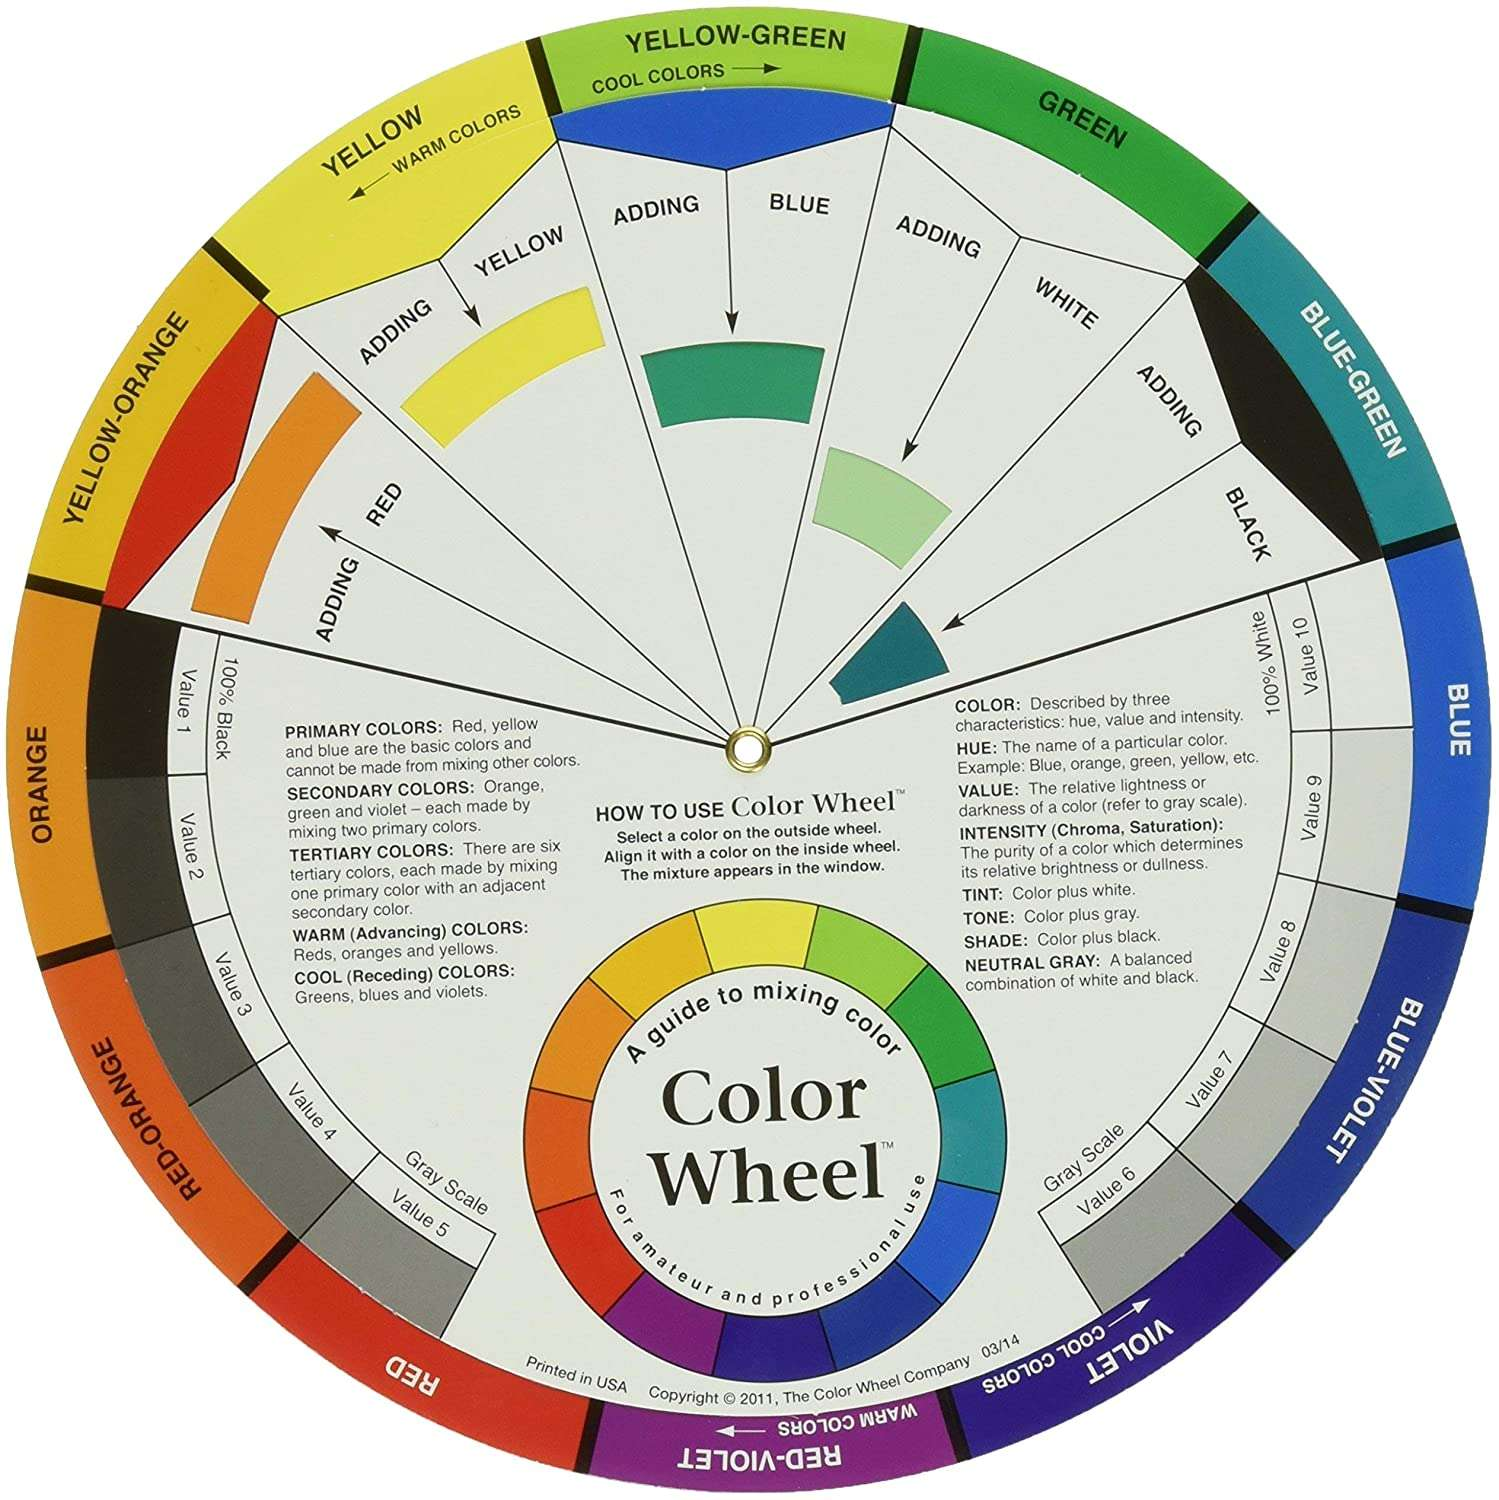 color wheel for picking colors